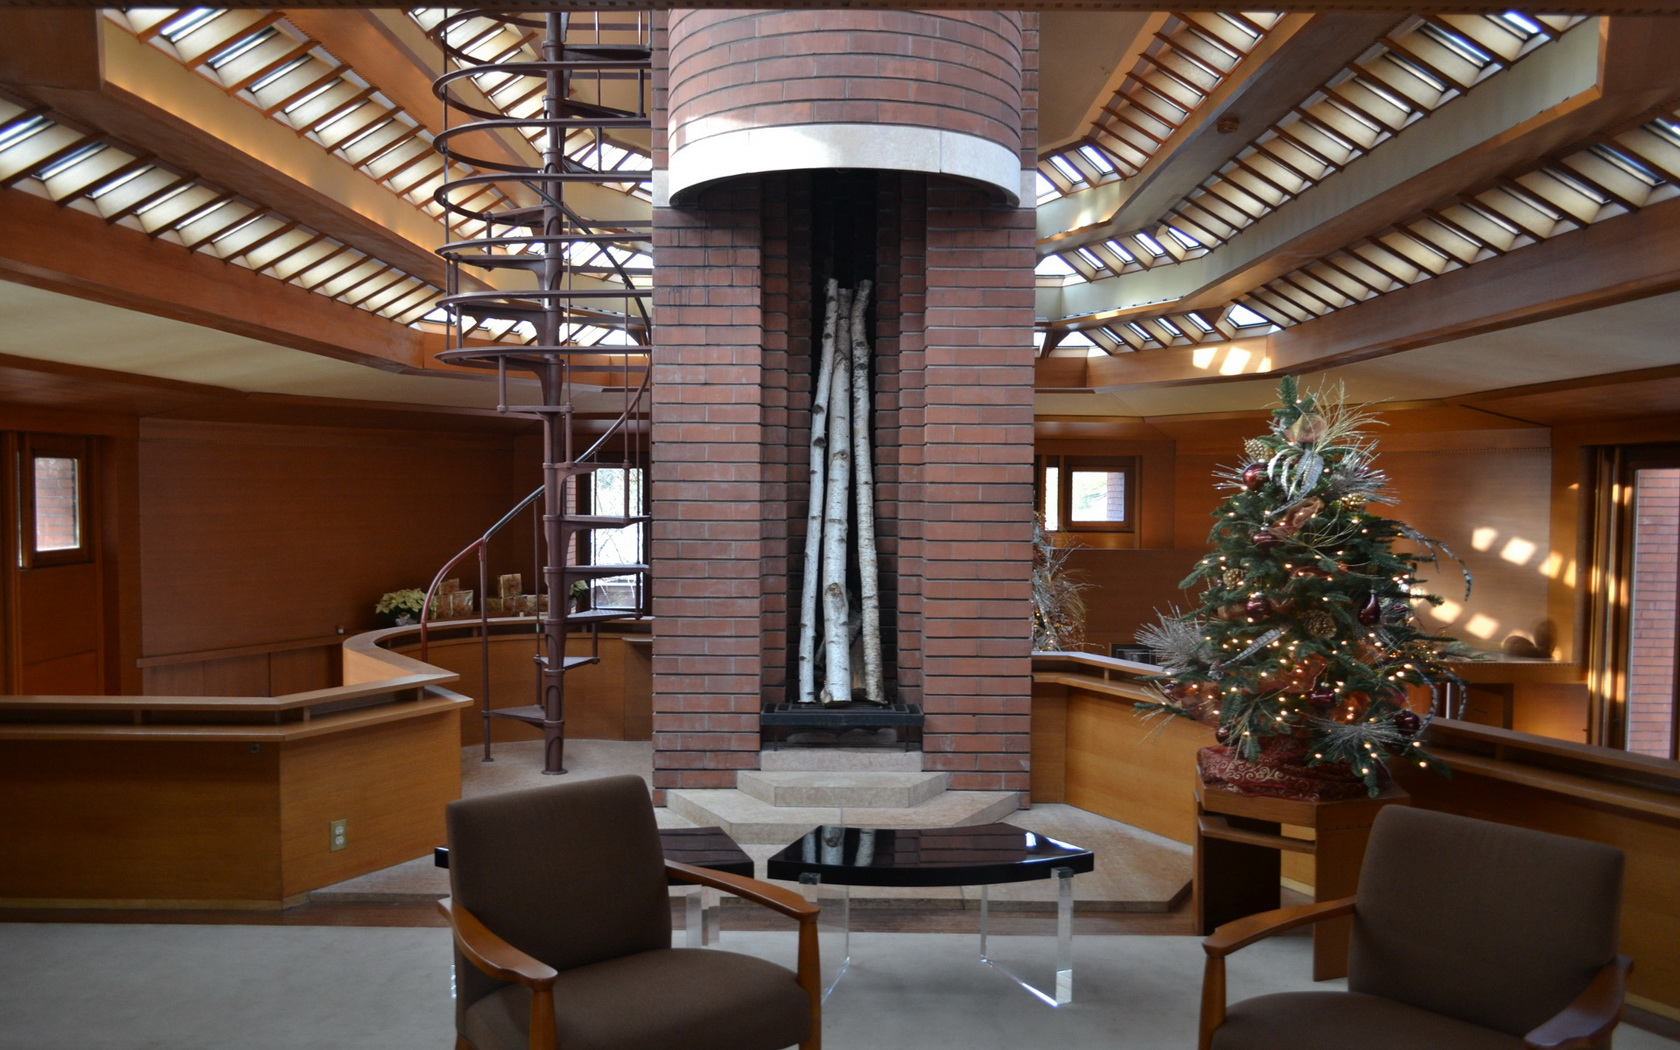 Architecture Indoors Interior Design Frank Lloyd Wright Wallpaper 1680x1050 135892 Wallpaperup